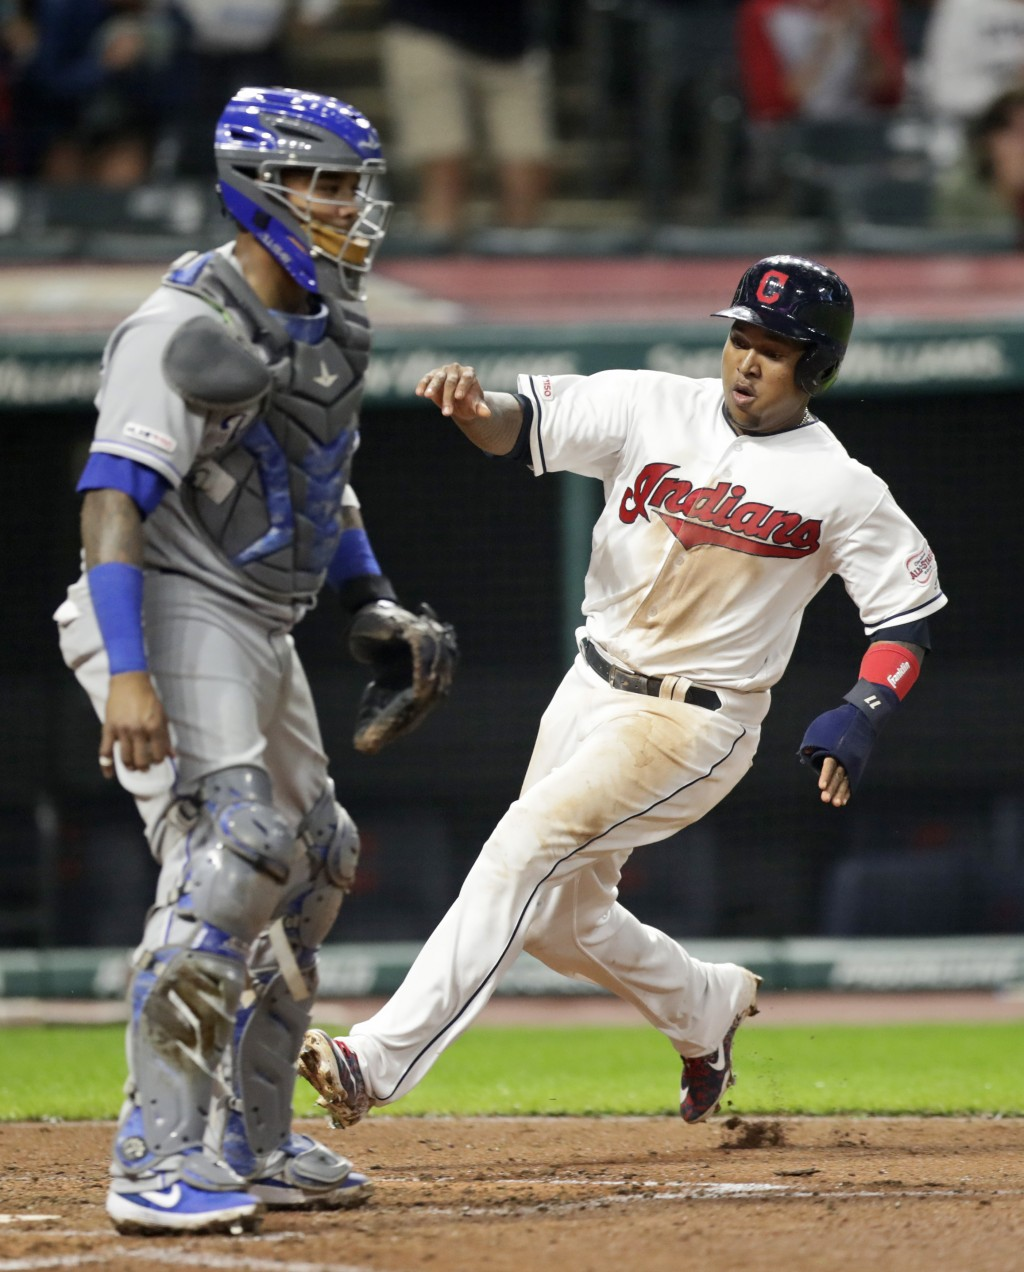 Cleveland Indians' Jose Ramirez, right, scores as Kansas City Royal catcher Martin Maldonado watches in the sixth inning in a baseball game, Monday, J...